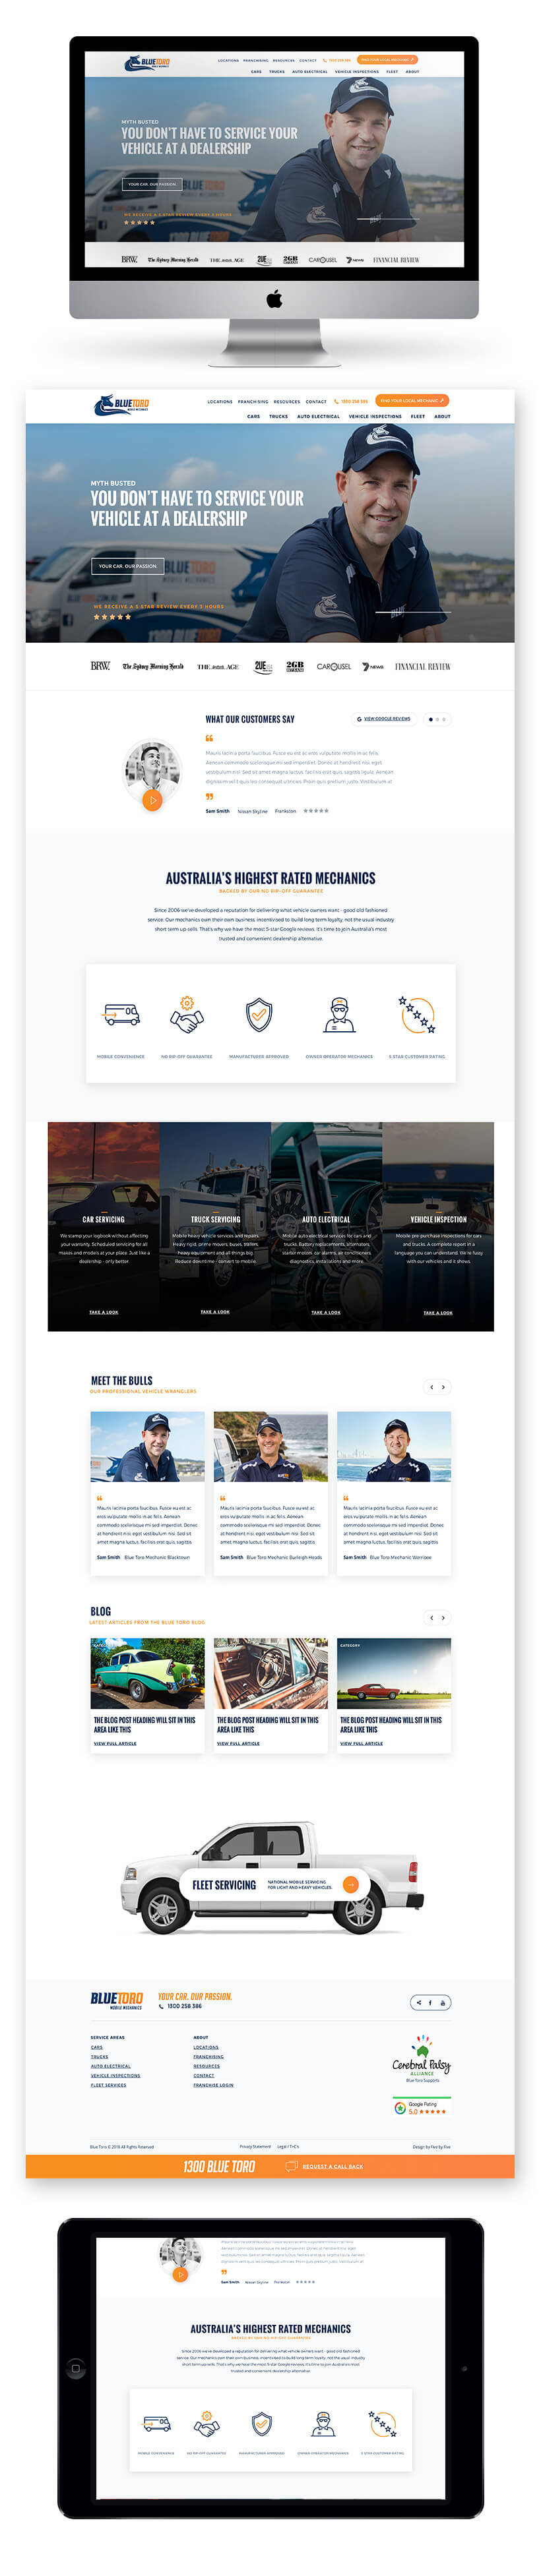 Blue Toro Mobile Mechanics Site